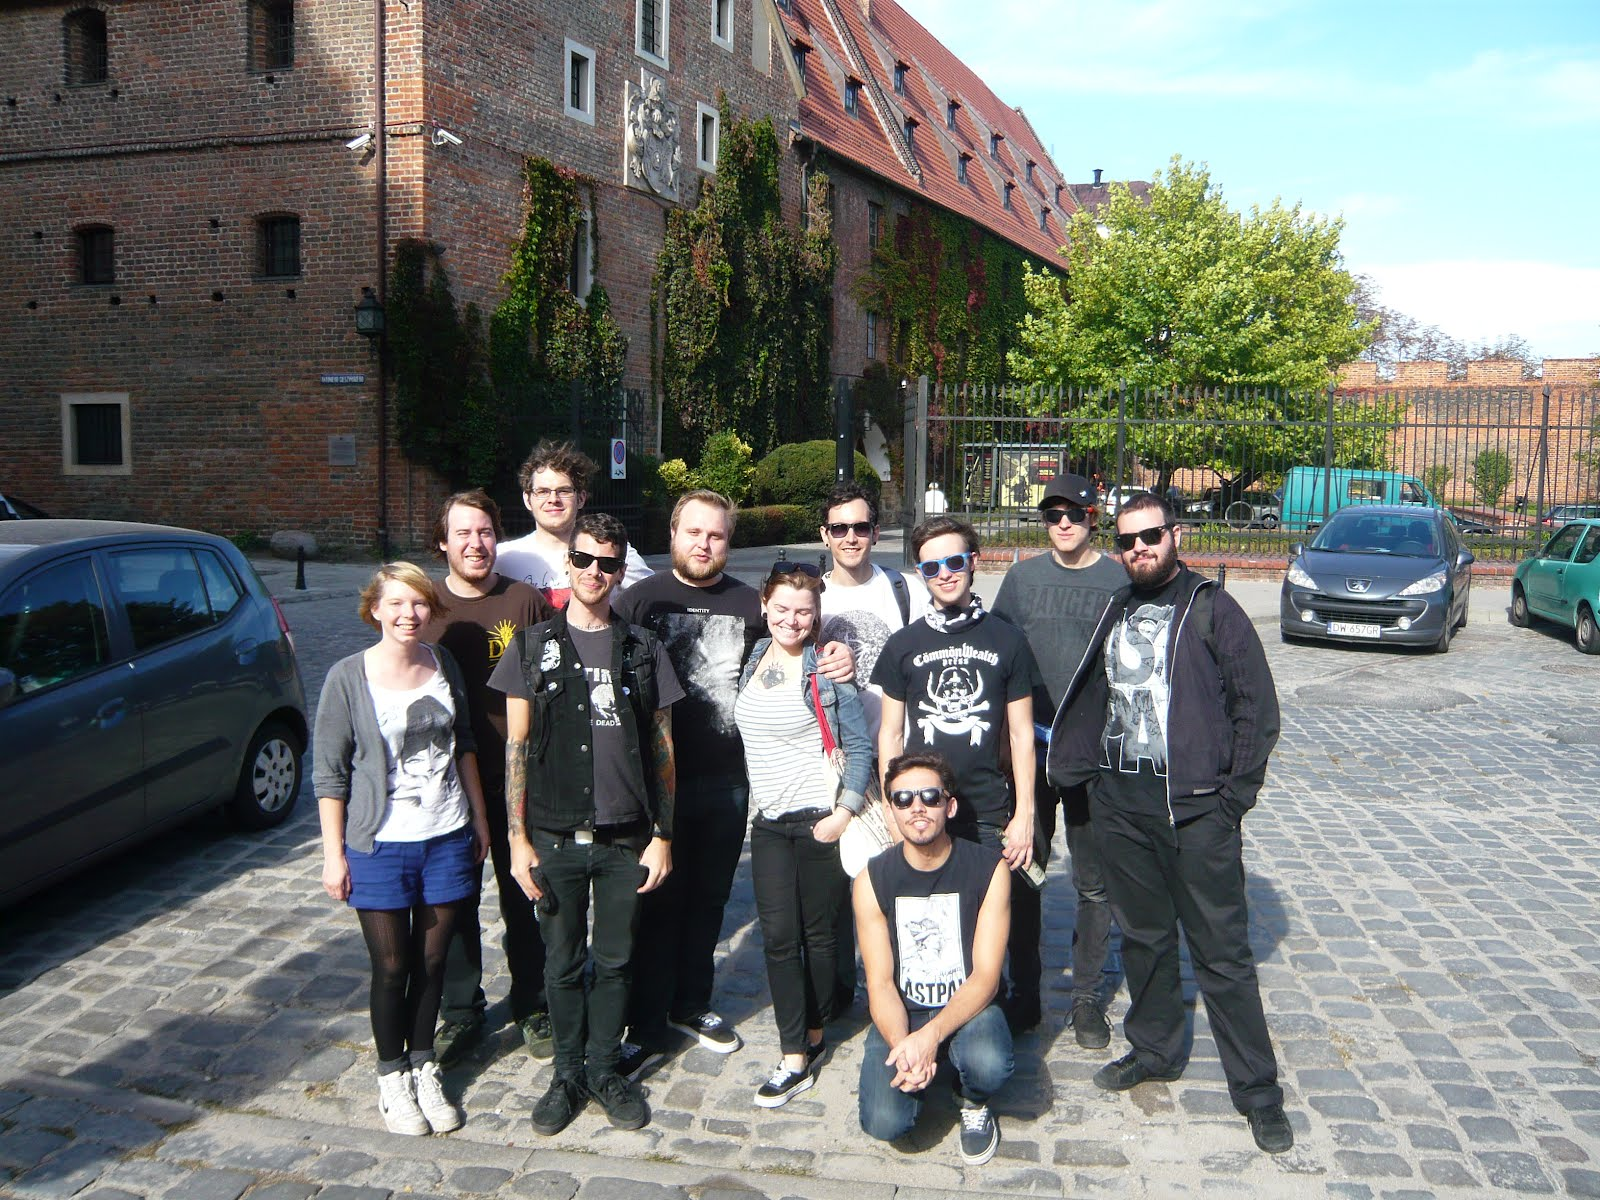 Astpai/ Despite Everything plus our promoters/ hosts for that night in Wroclaw, Poland.